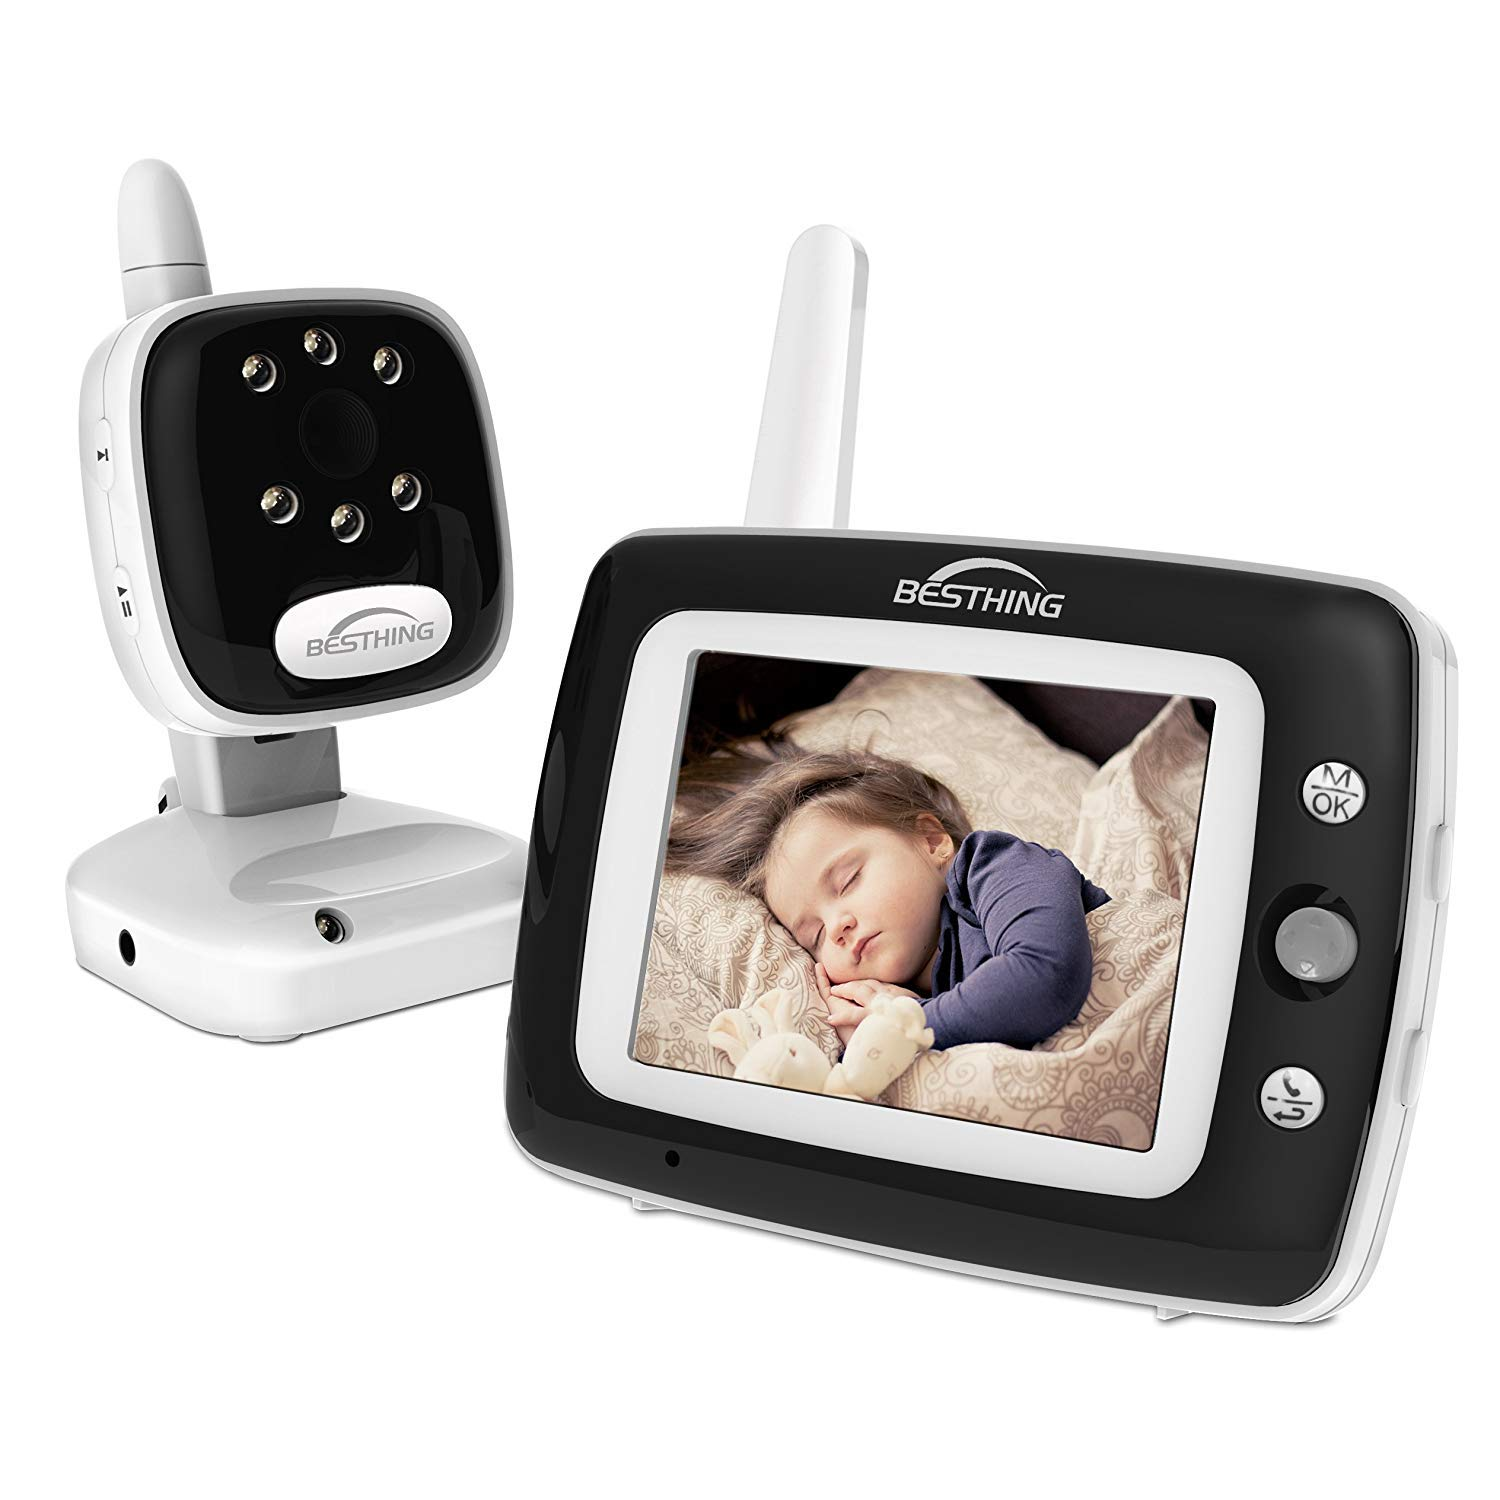 [2019 New Version] Digital Baby Monitor with Camera, 3.5 Inch Color Screen, Long Range Wireless Monitoring with Night Vision, Soothing Lullabies, Two Way Audio and Temperature Display